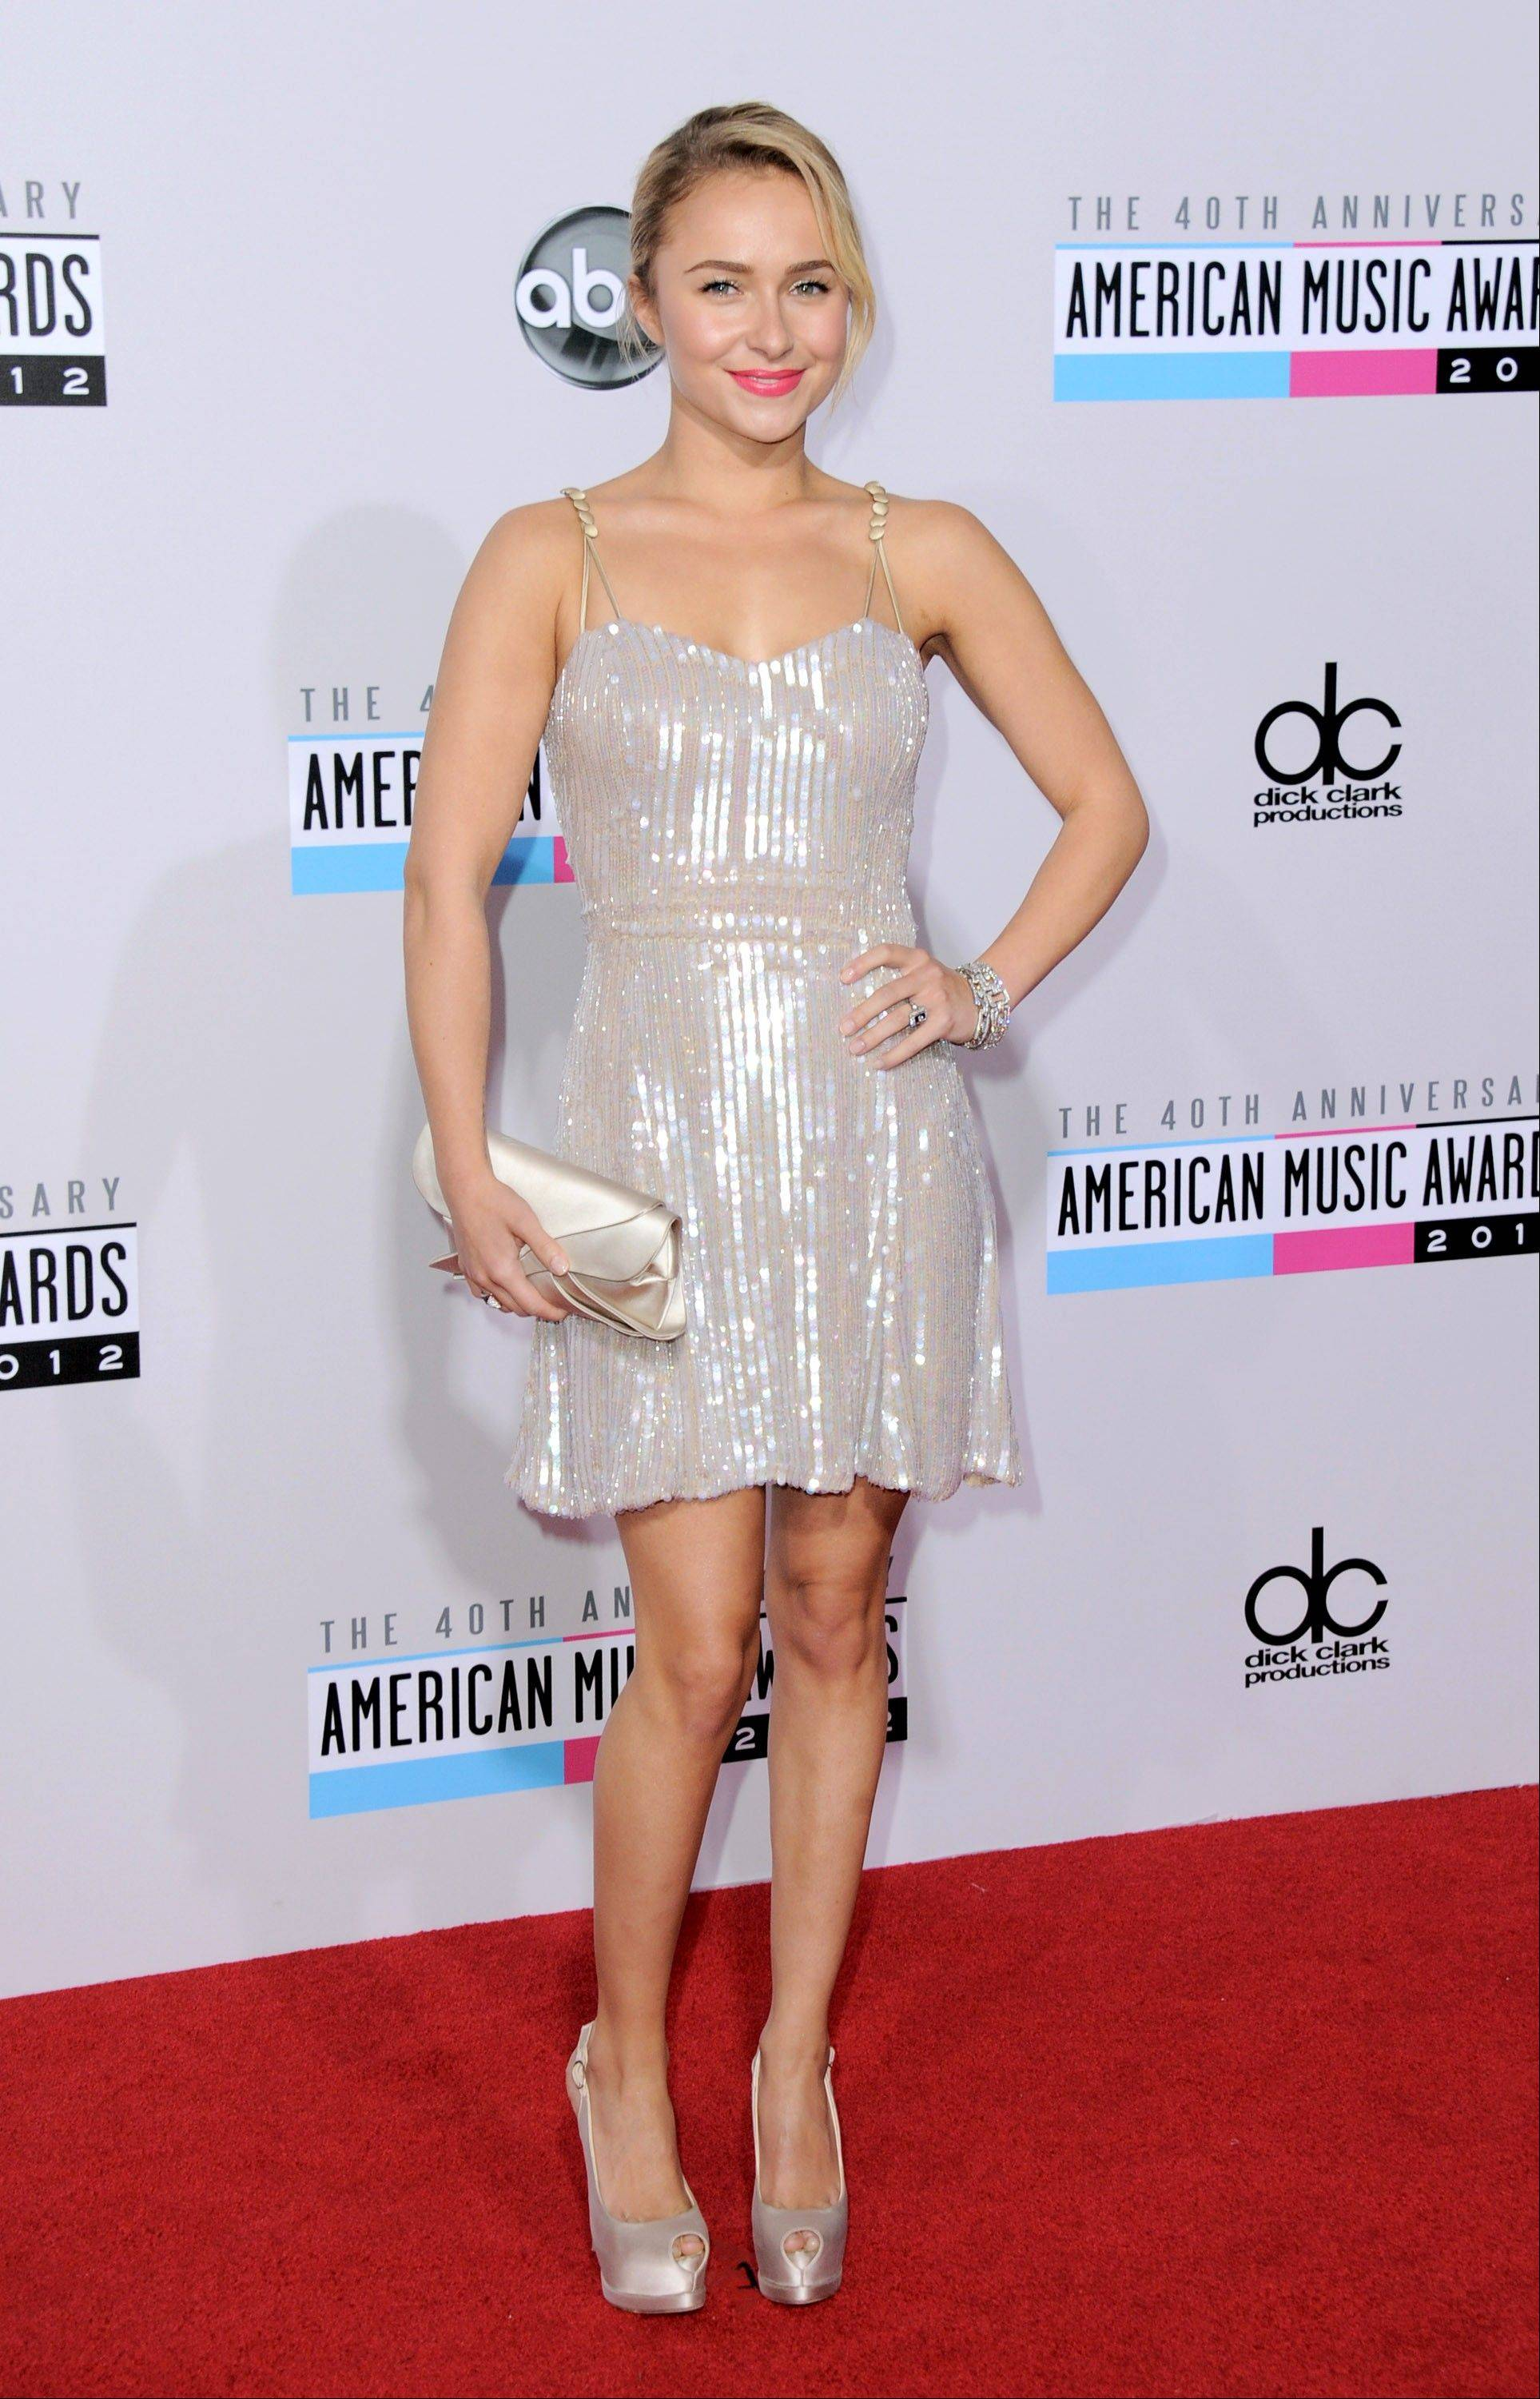 """Nashville"" actress Hayden Panettiere arrives at the 40th Anniversary American Music Awards on Sunday, Nov. 18, 2012, in Los Angeles."